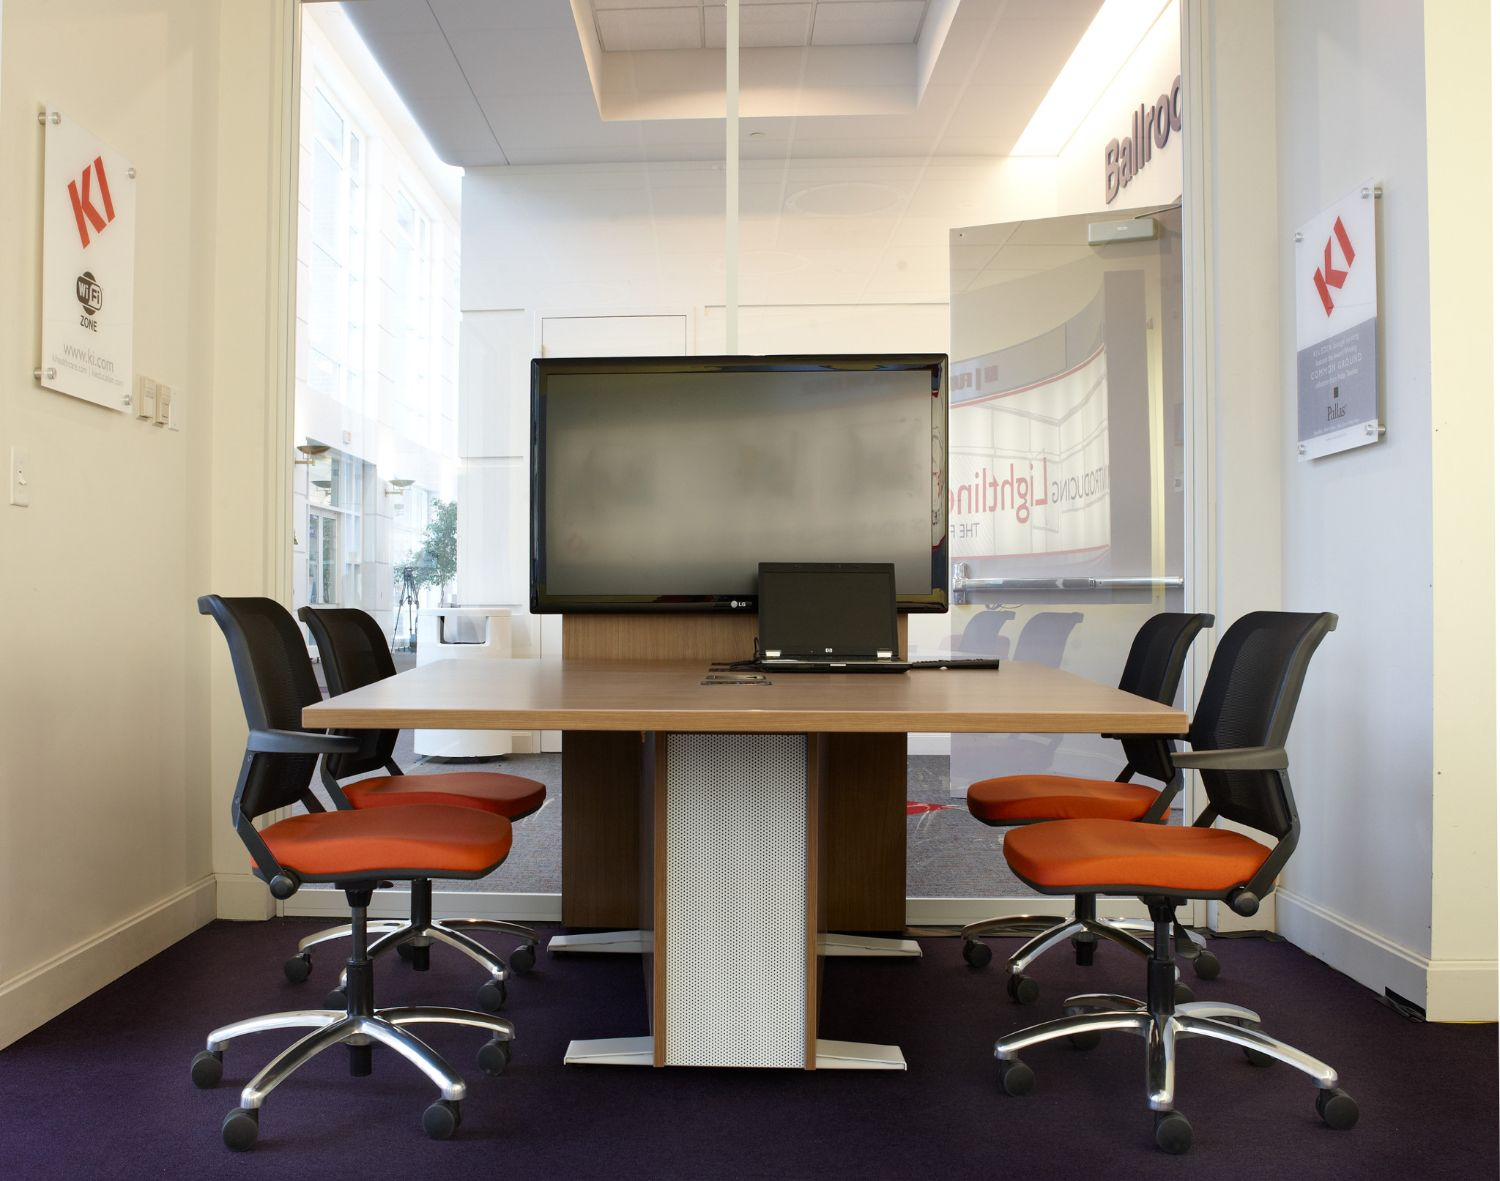 torsion air chairs in multi-media space